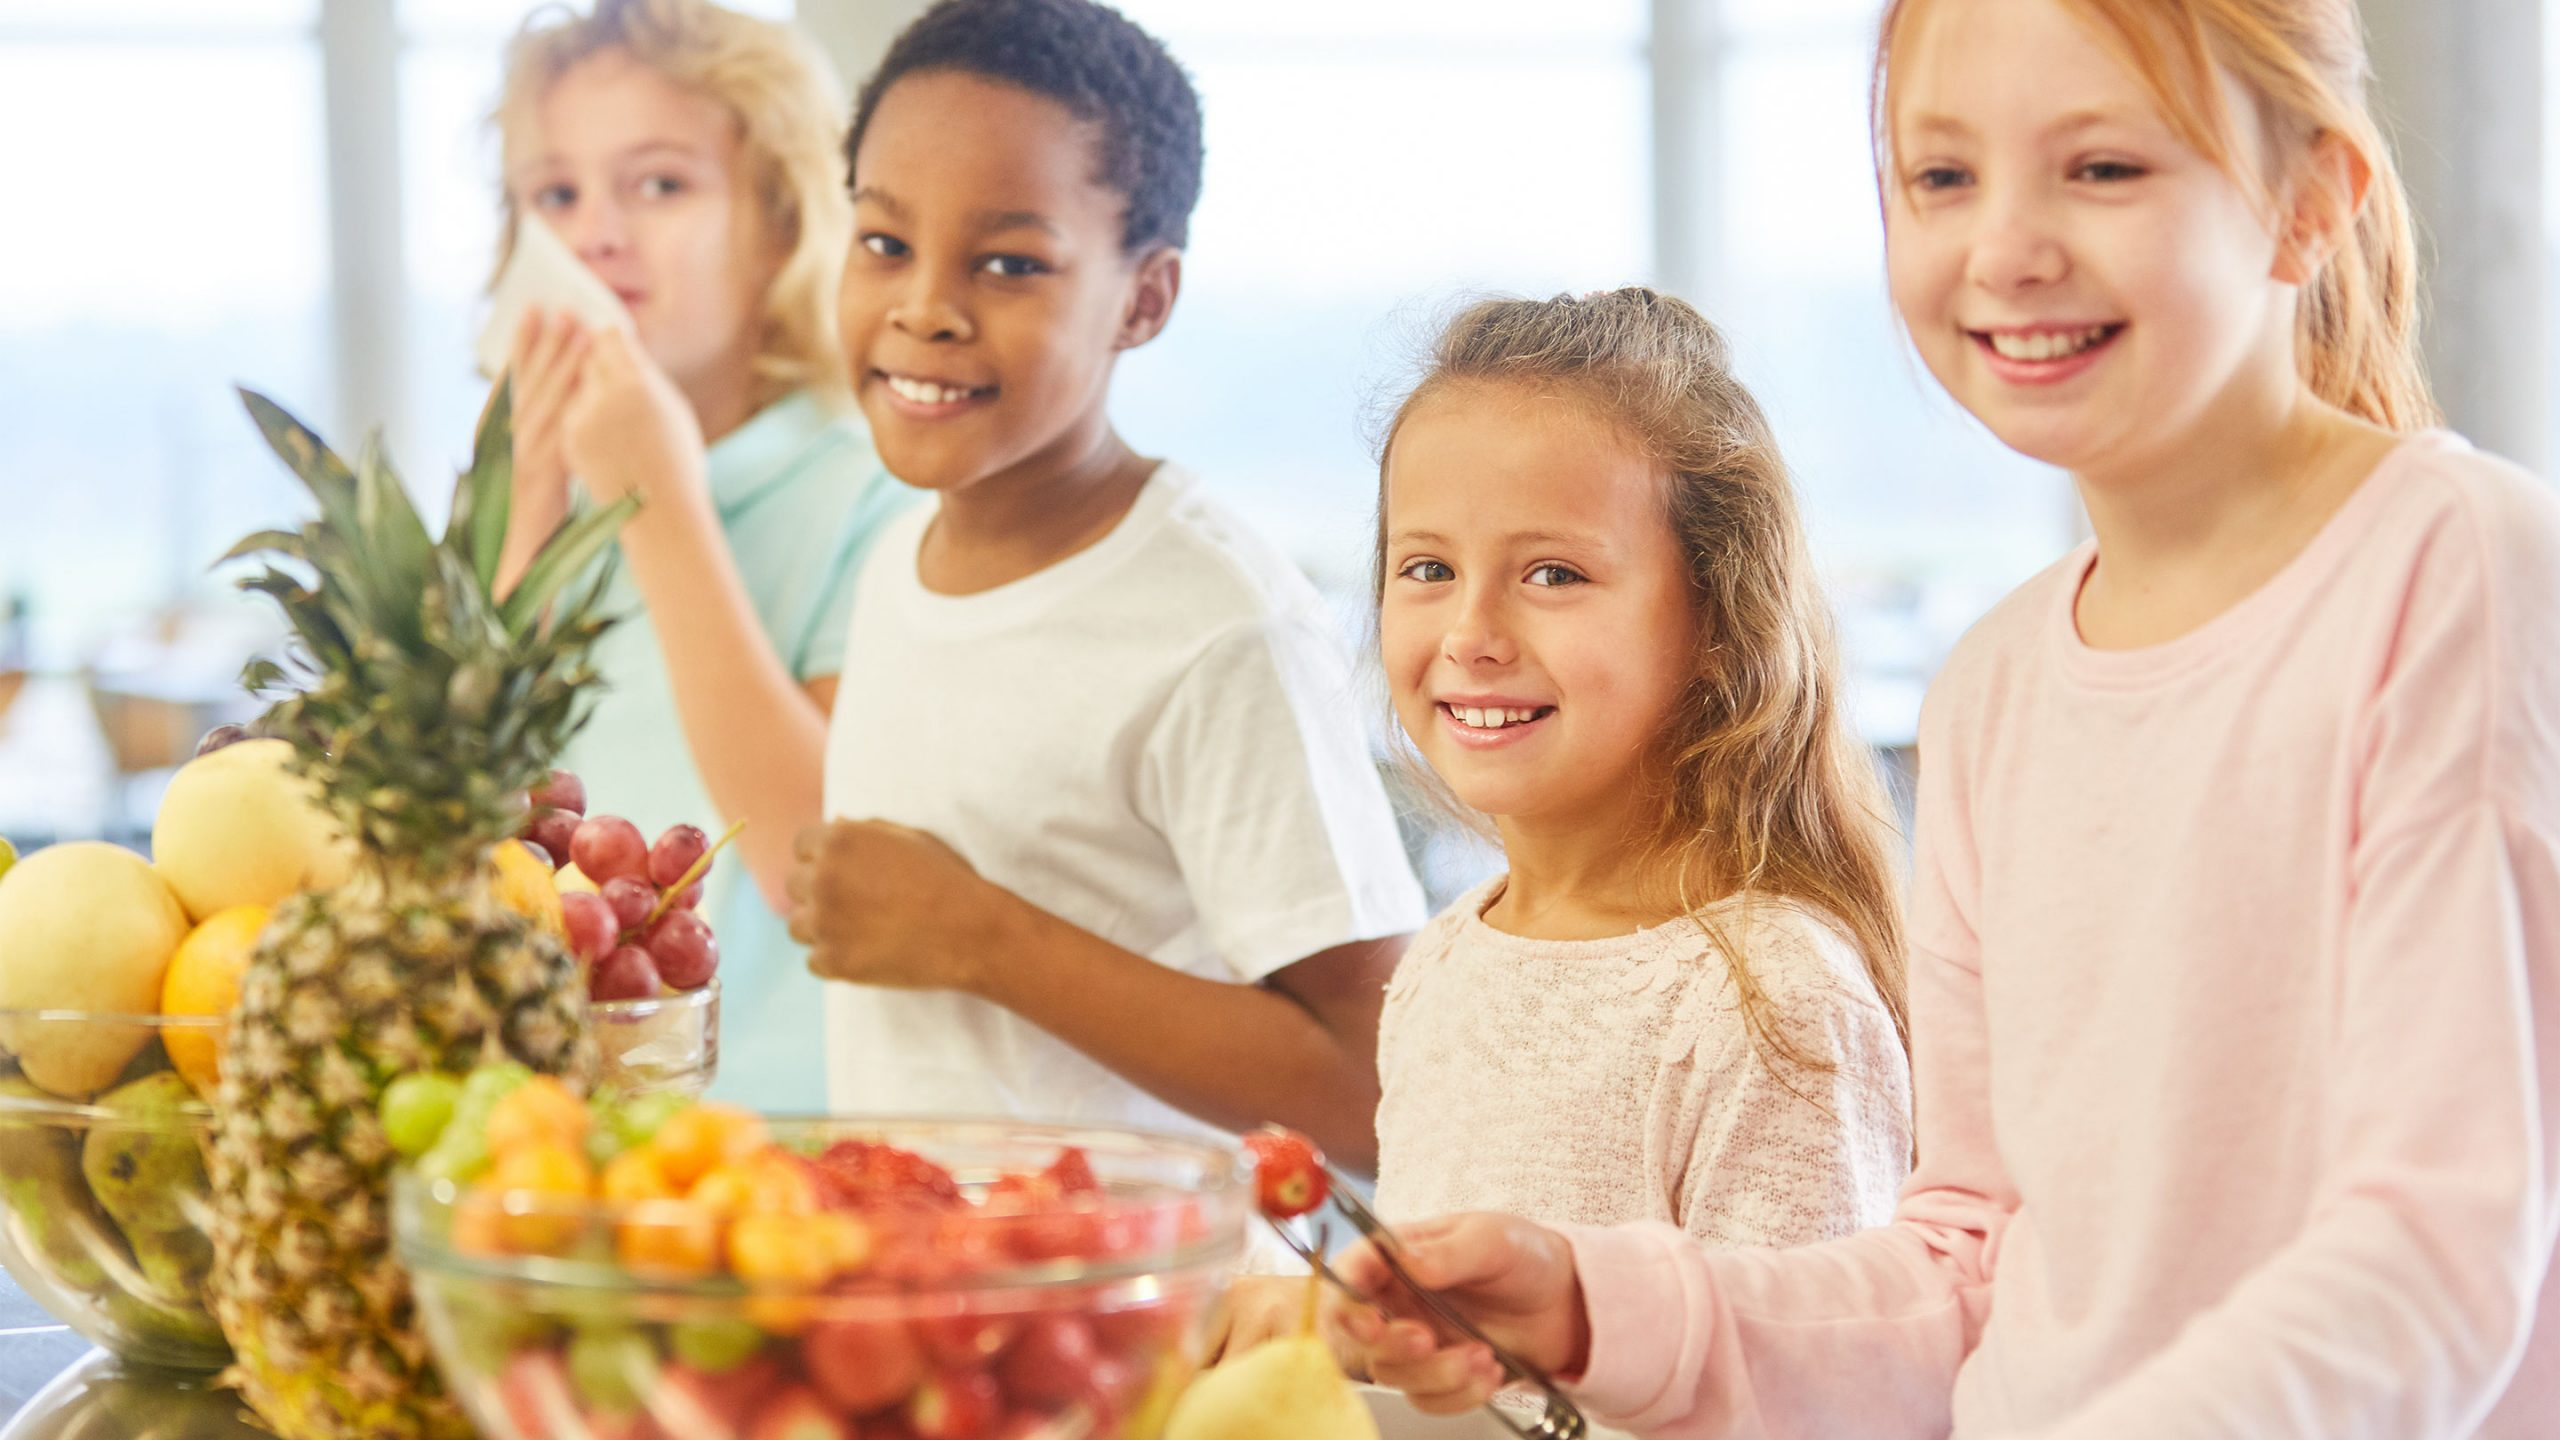 Pediatric and family nutrition